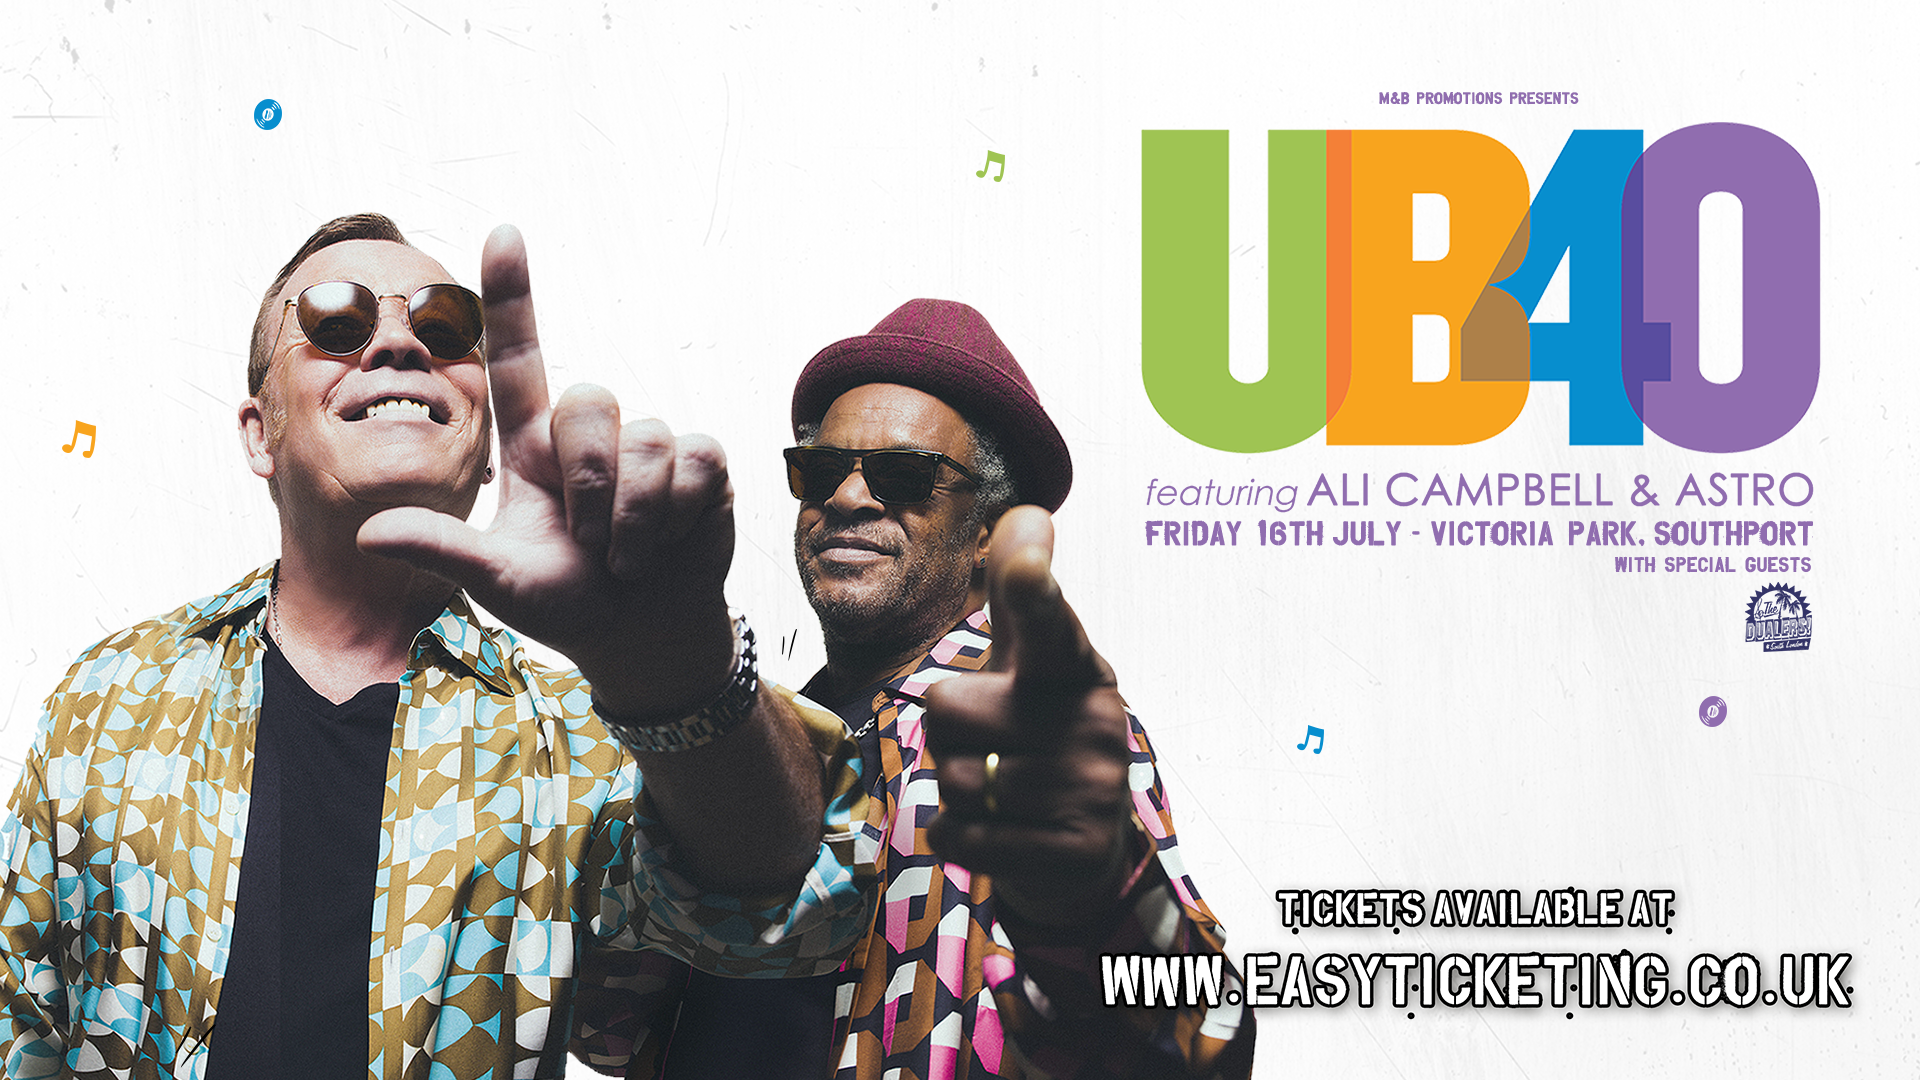 UB40 will perform a show at Victoria Park in Southport